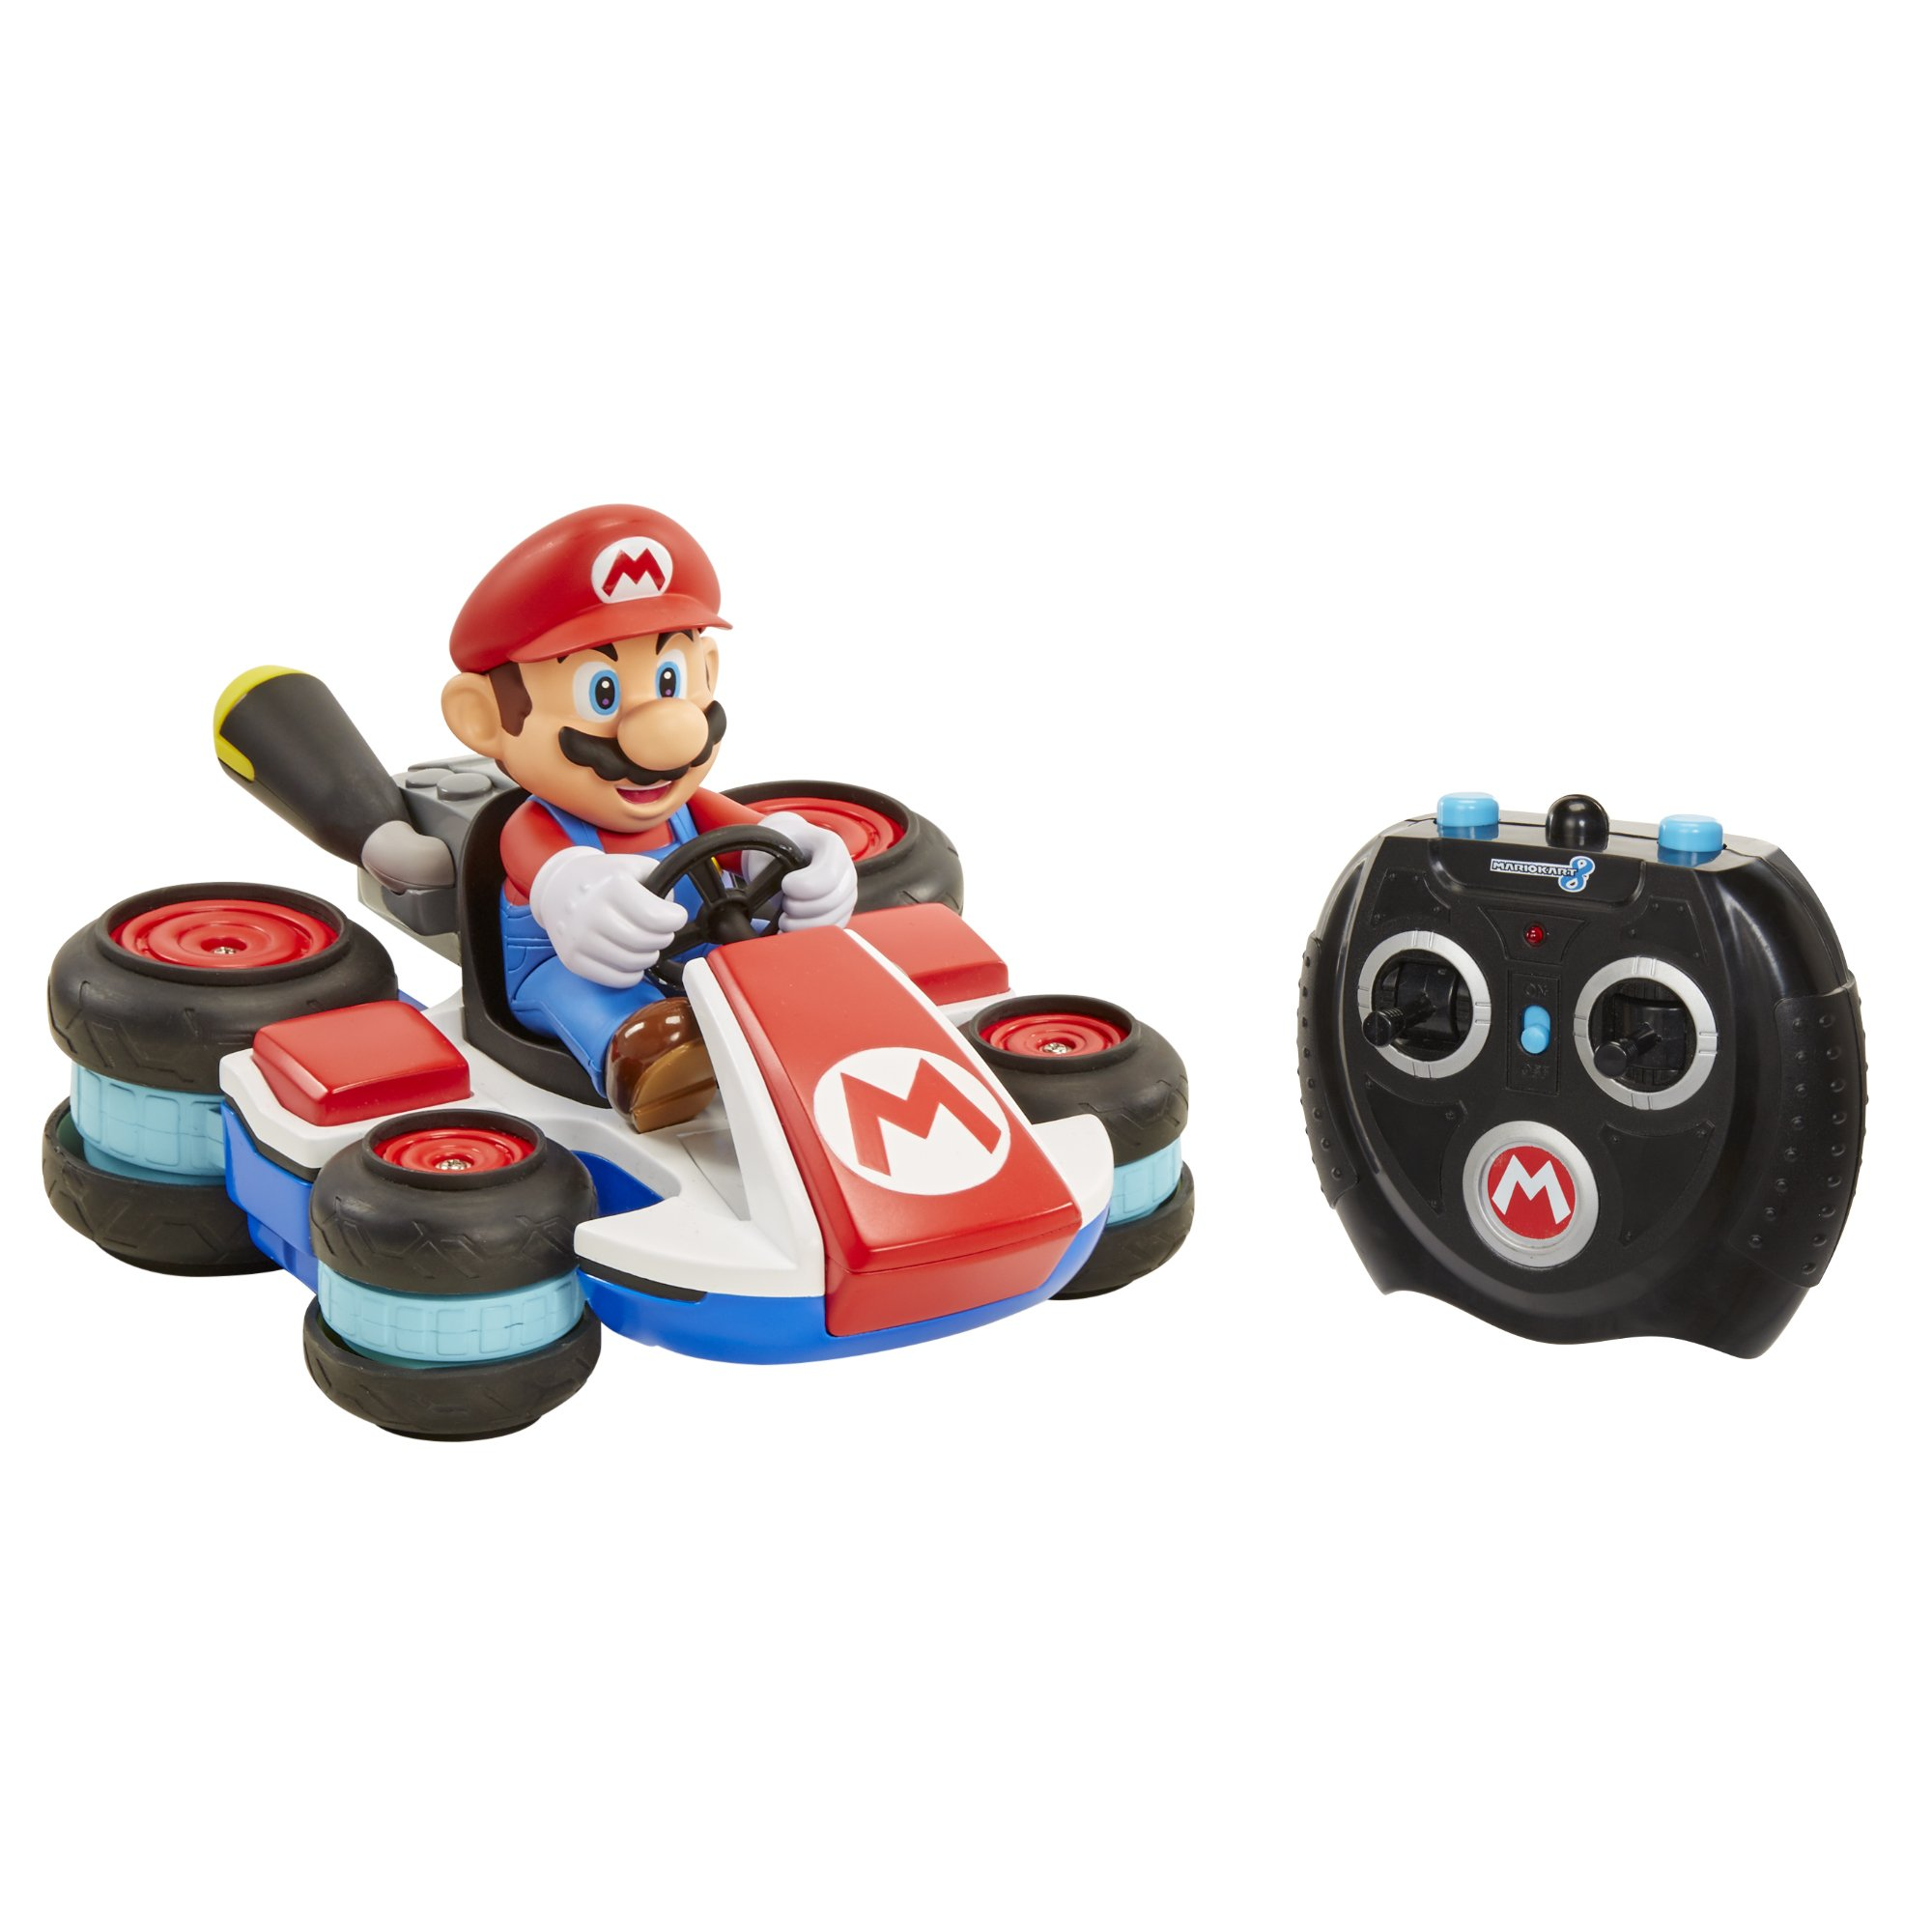 NINTENDO Super Mario Kart 8 Mario Anti-Gravity Mini RC Racer 2.4Ghz by Nintendo (Image #5)